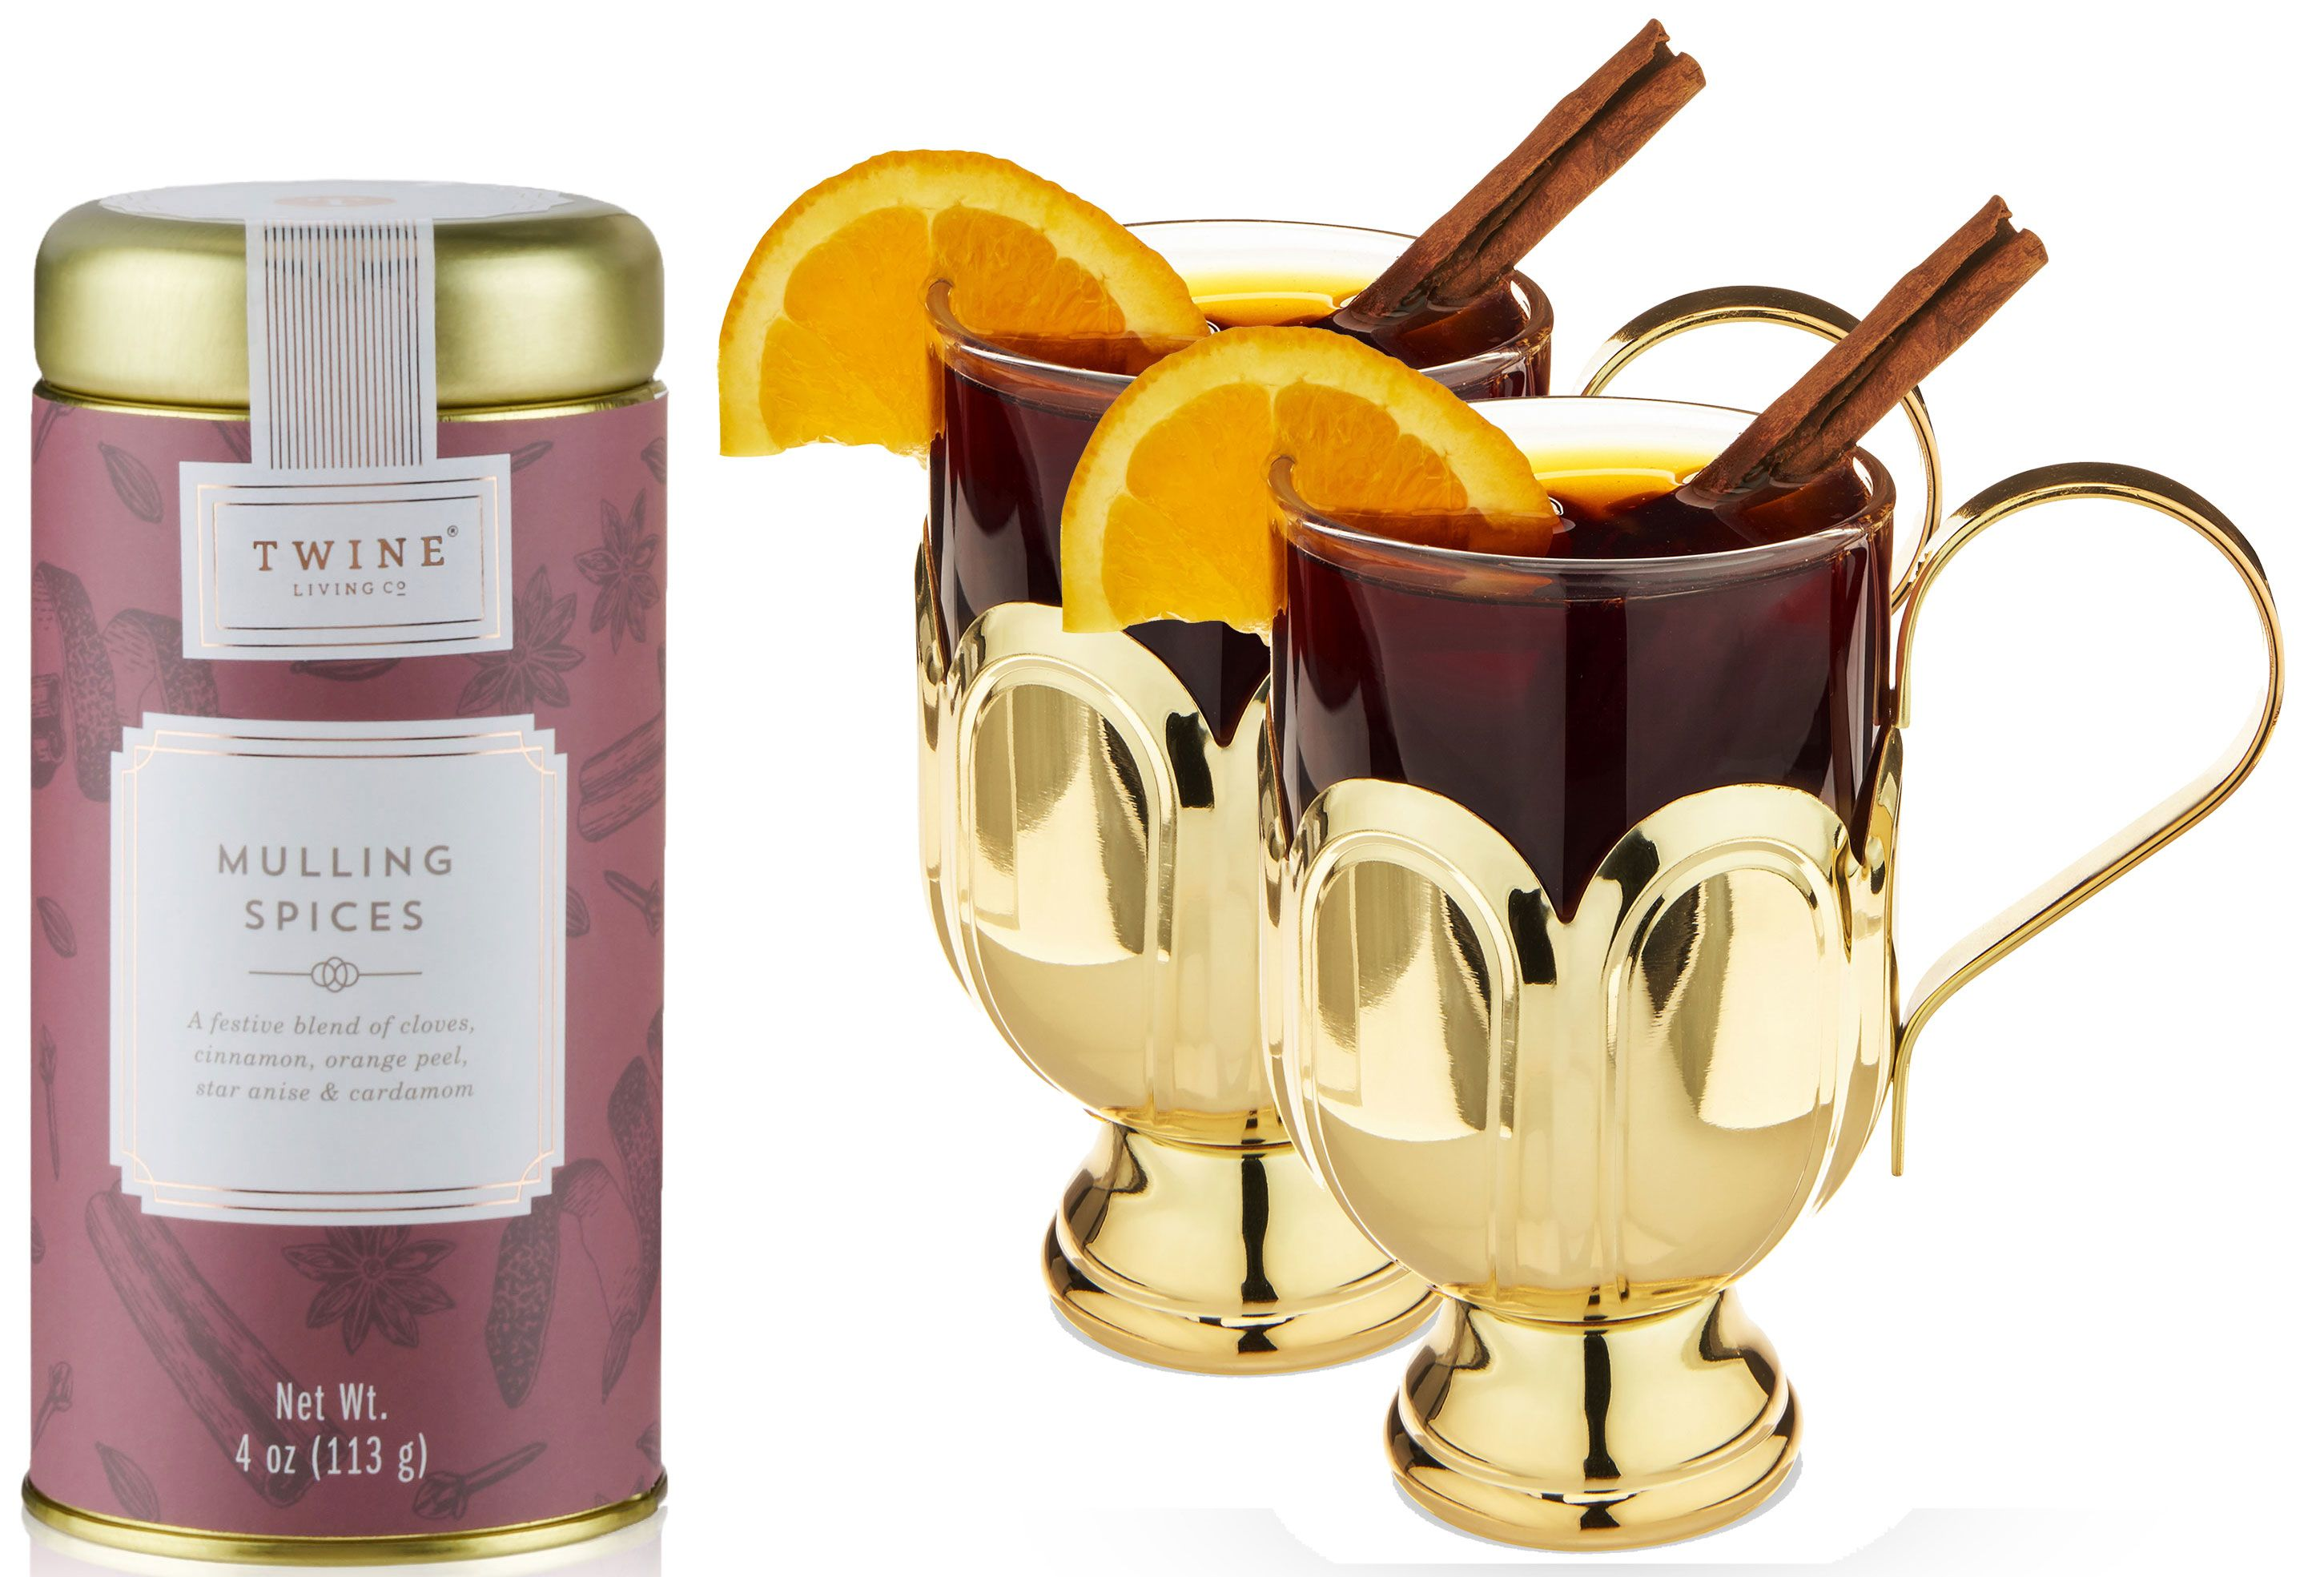 wine.com Mulled Wine Glass Set by Twine (Spices Included)  Gift Product Image